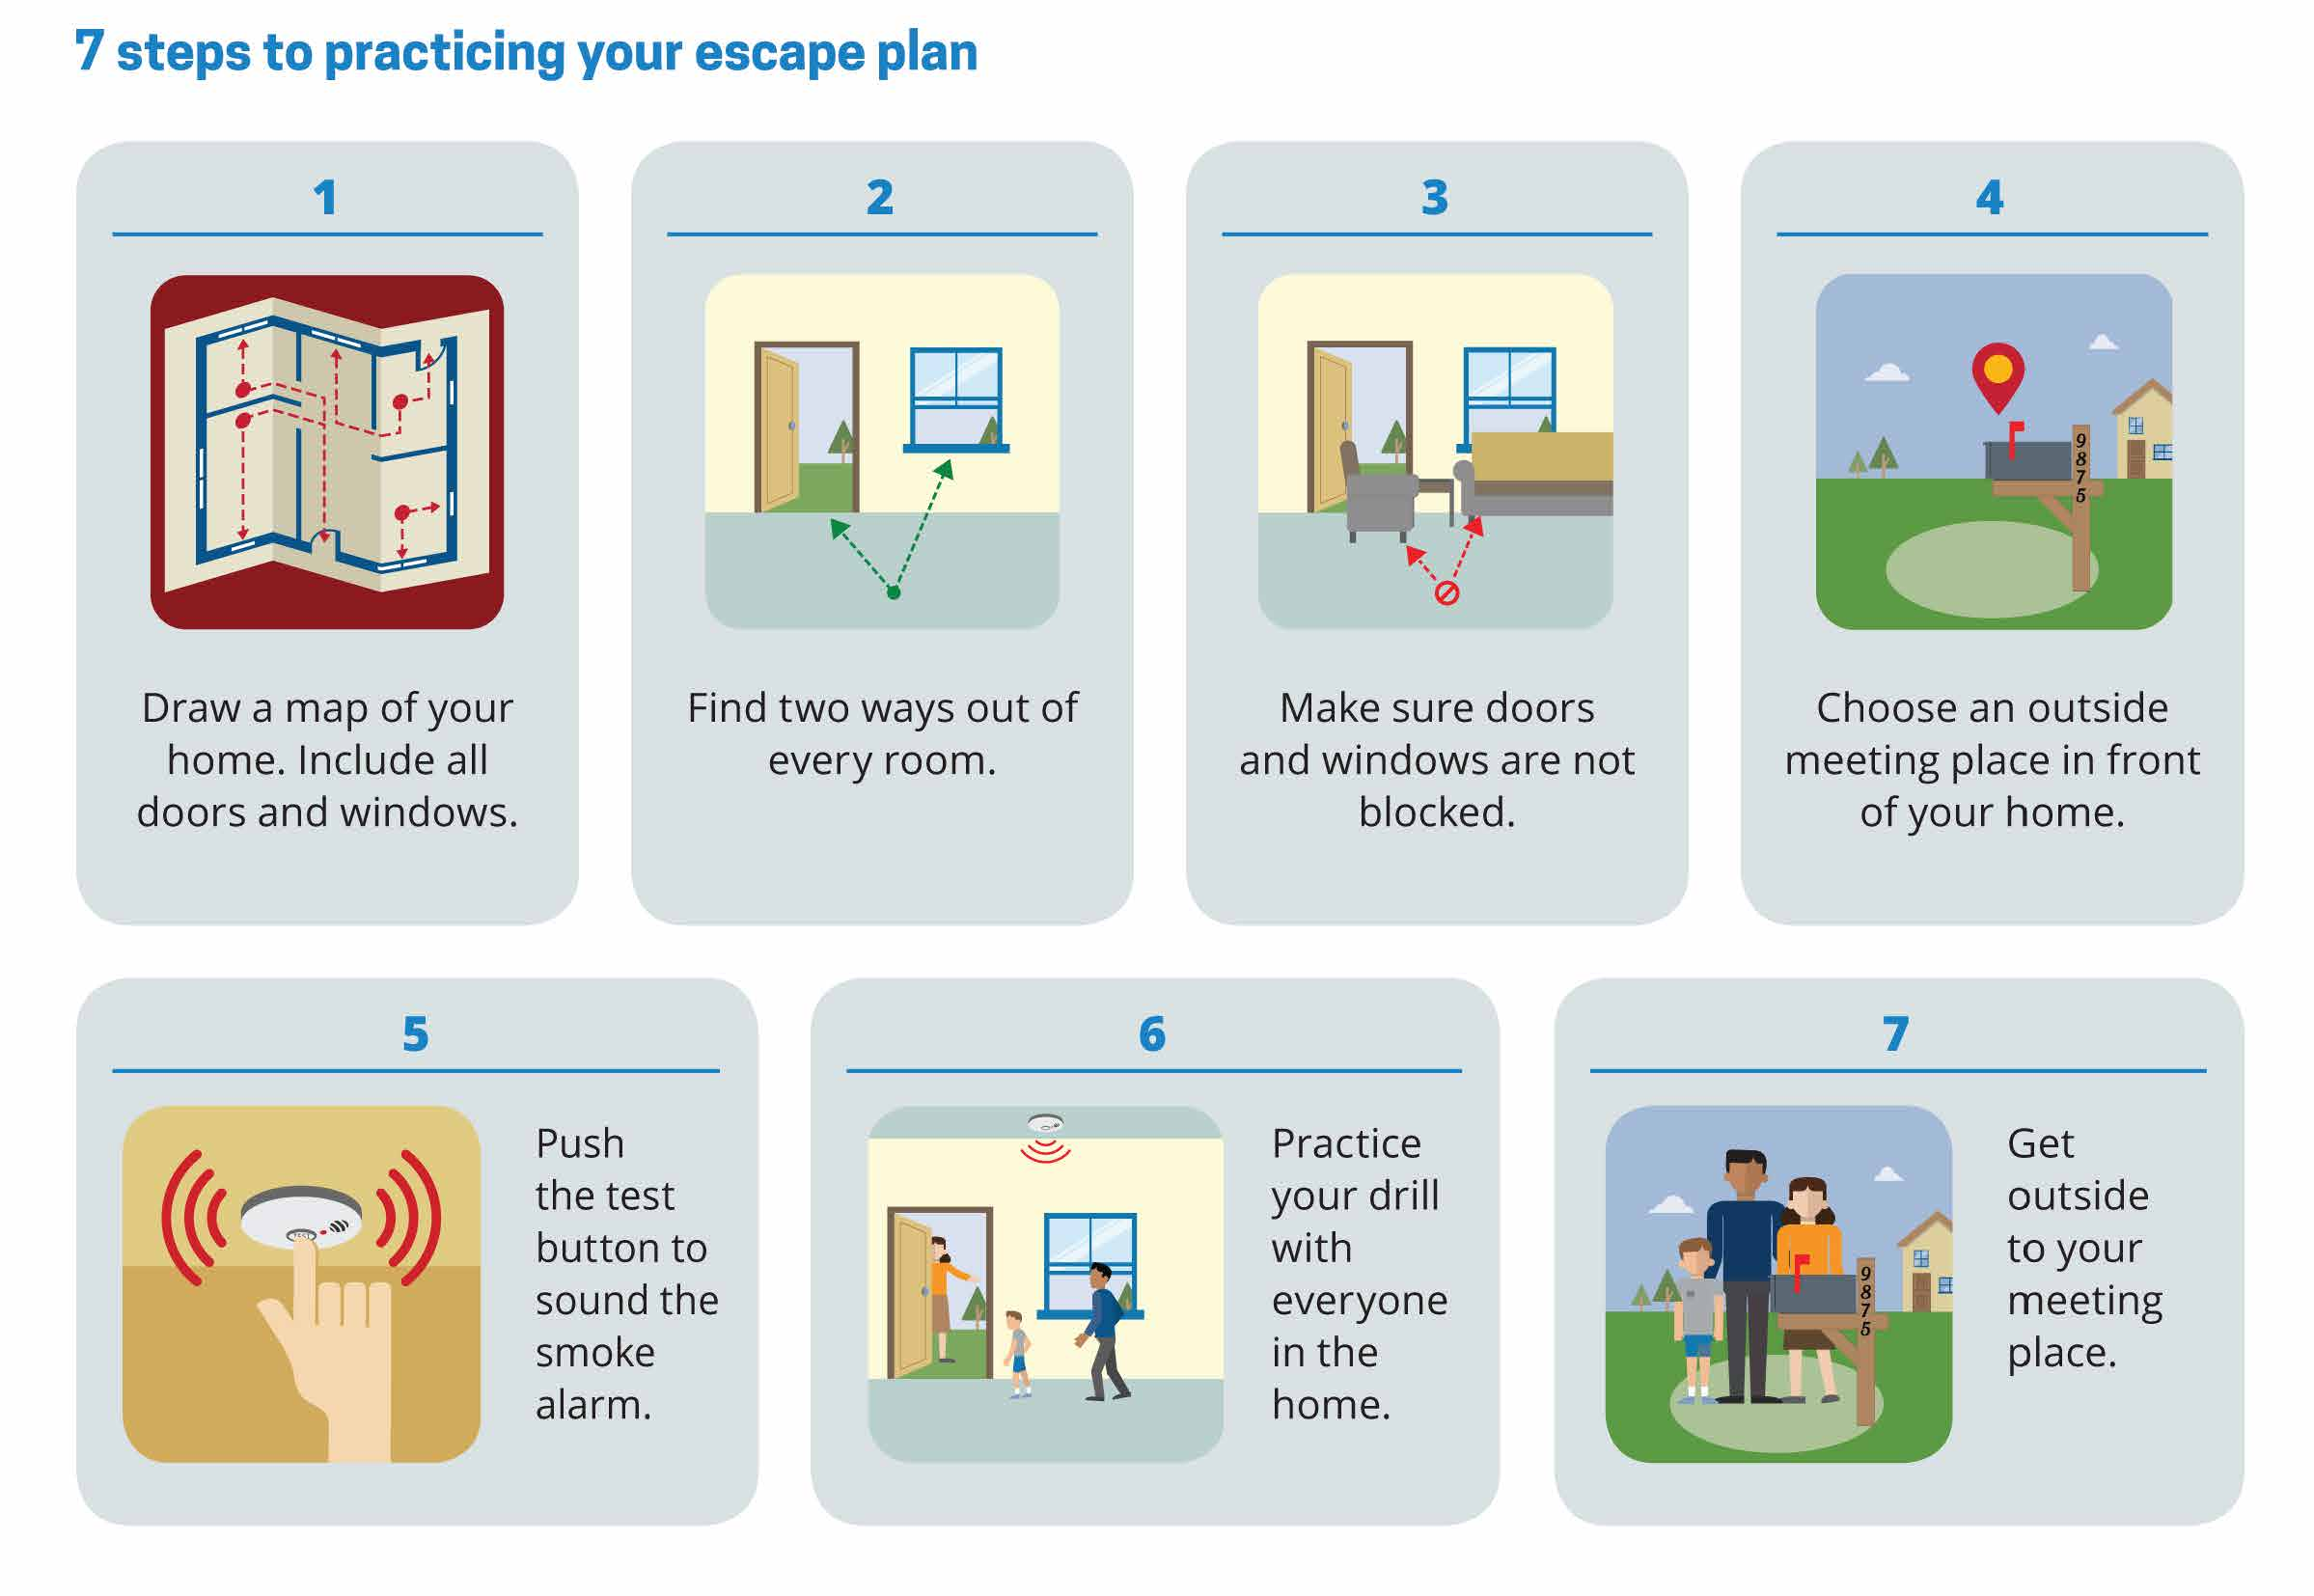 Seven steps to practicing your escape plan